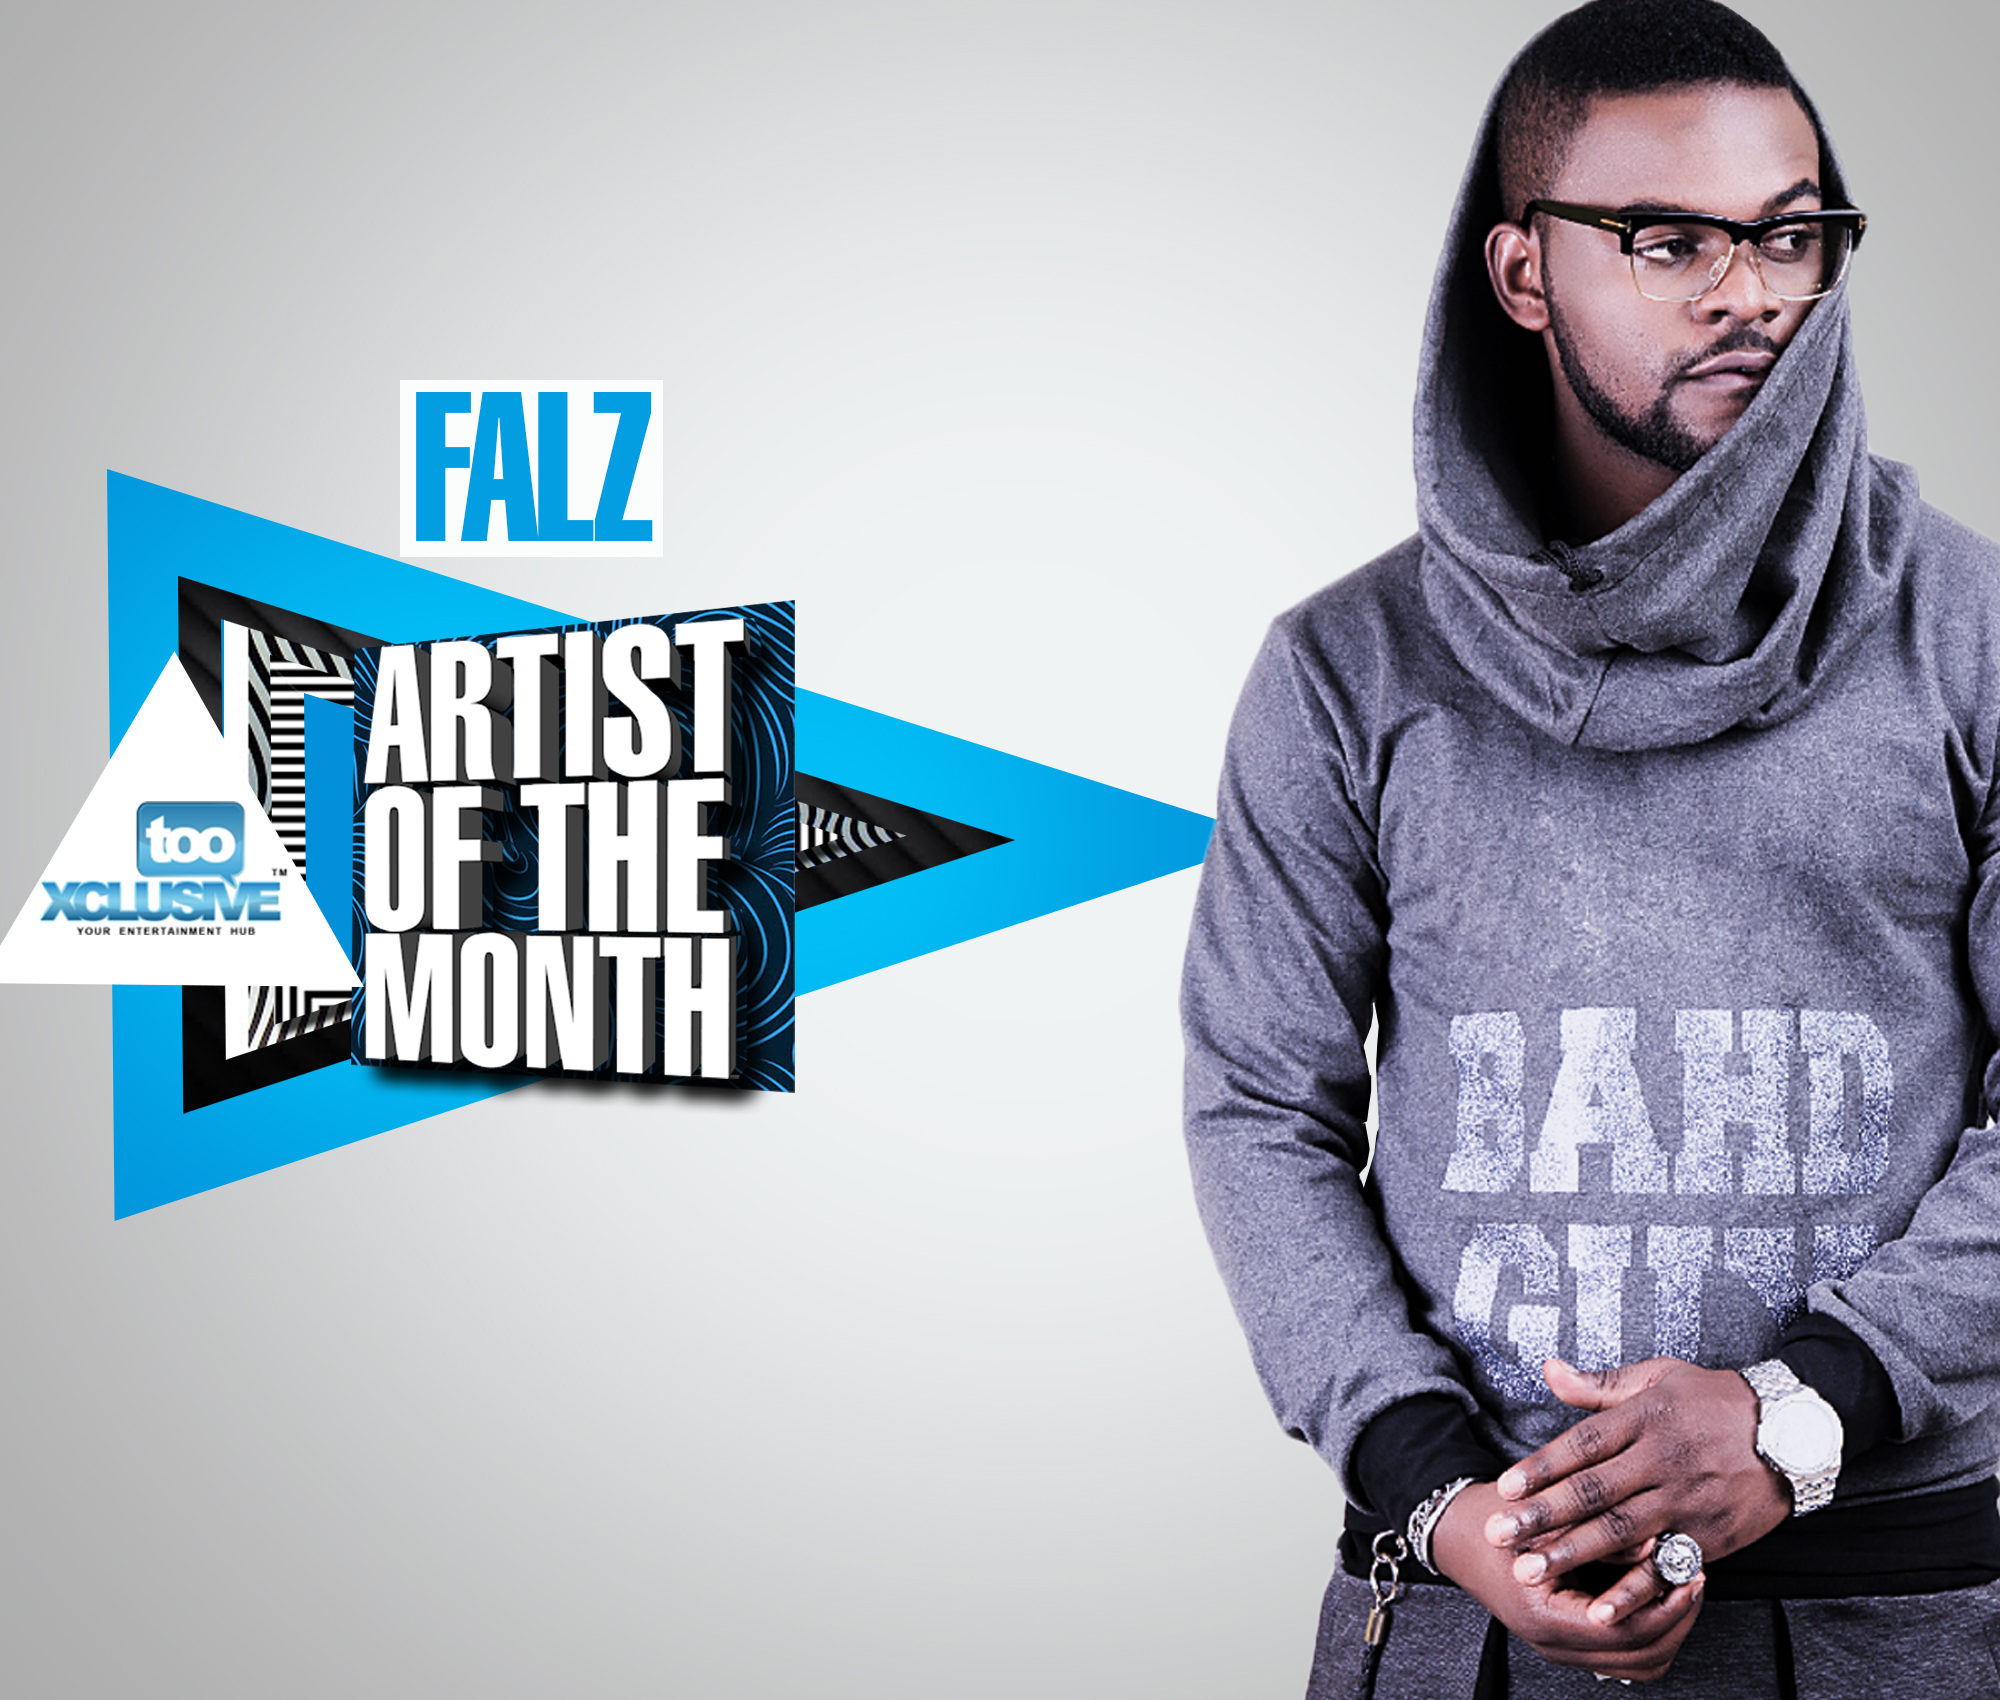 TX Artiste of the Month - Falz